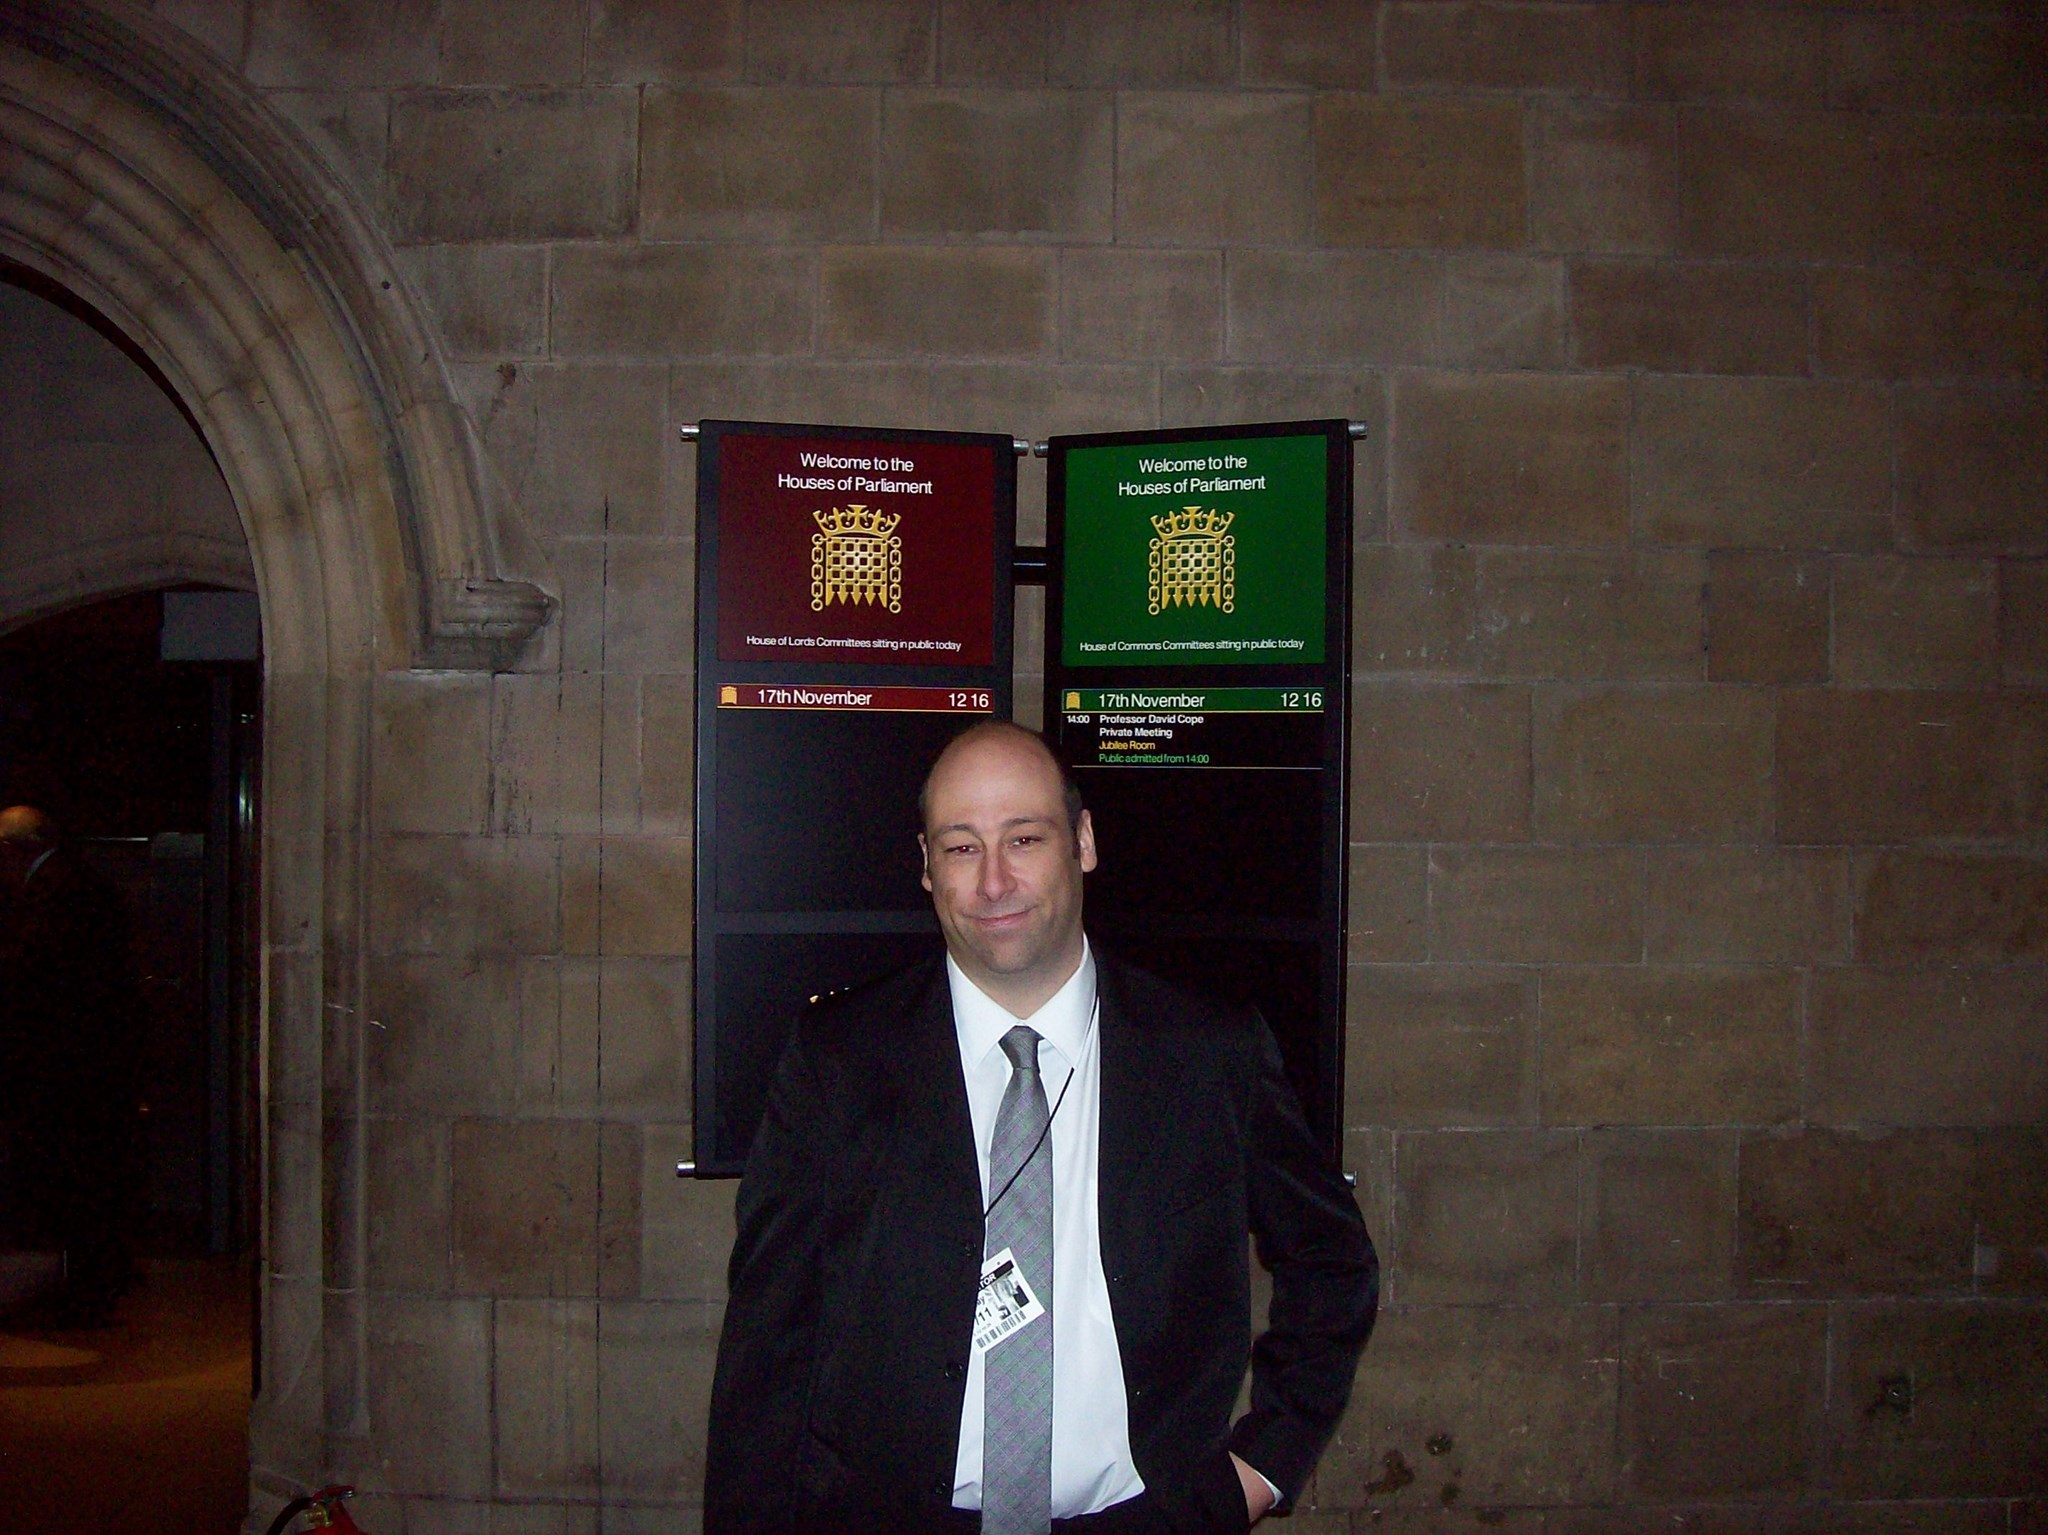 Mr Ryder @ The House of Commons 18.11.2009